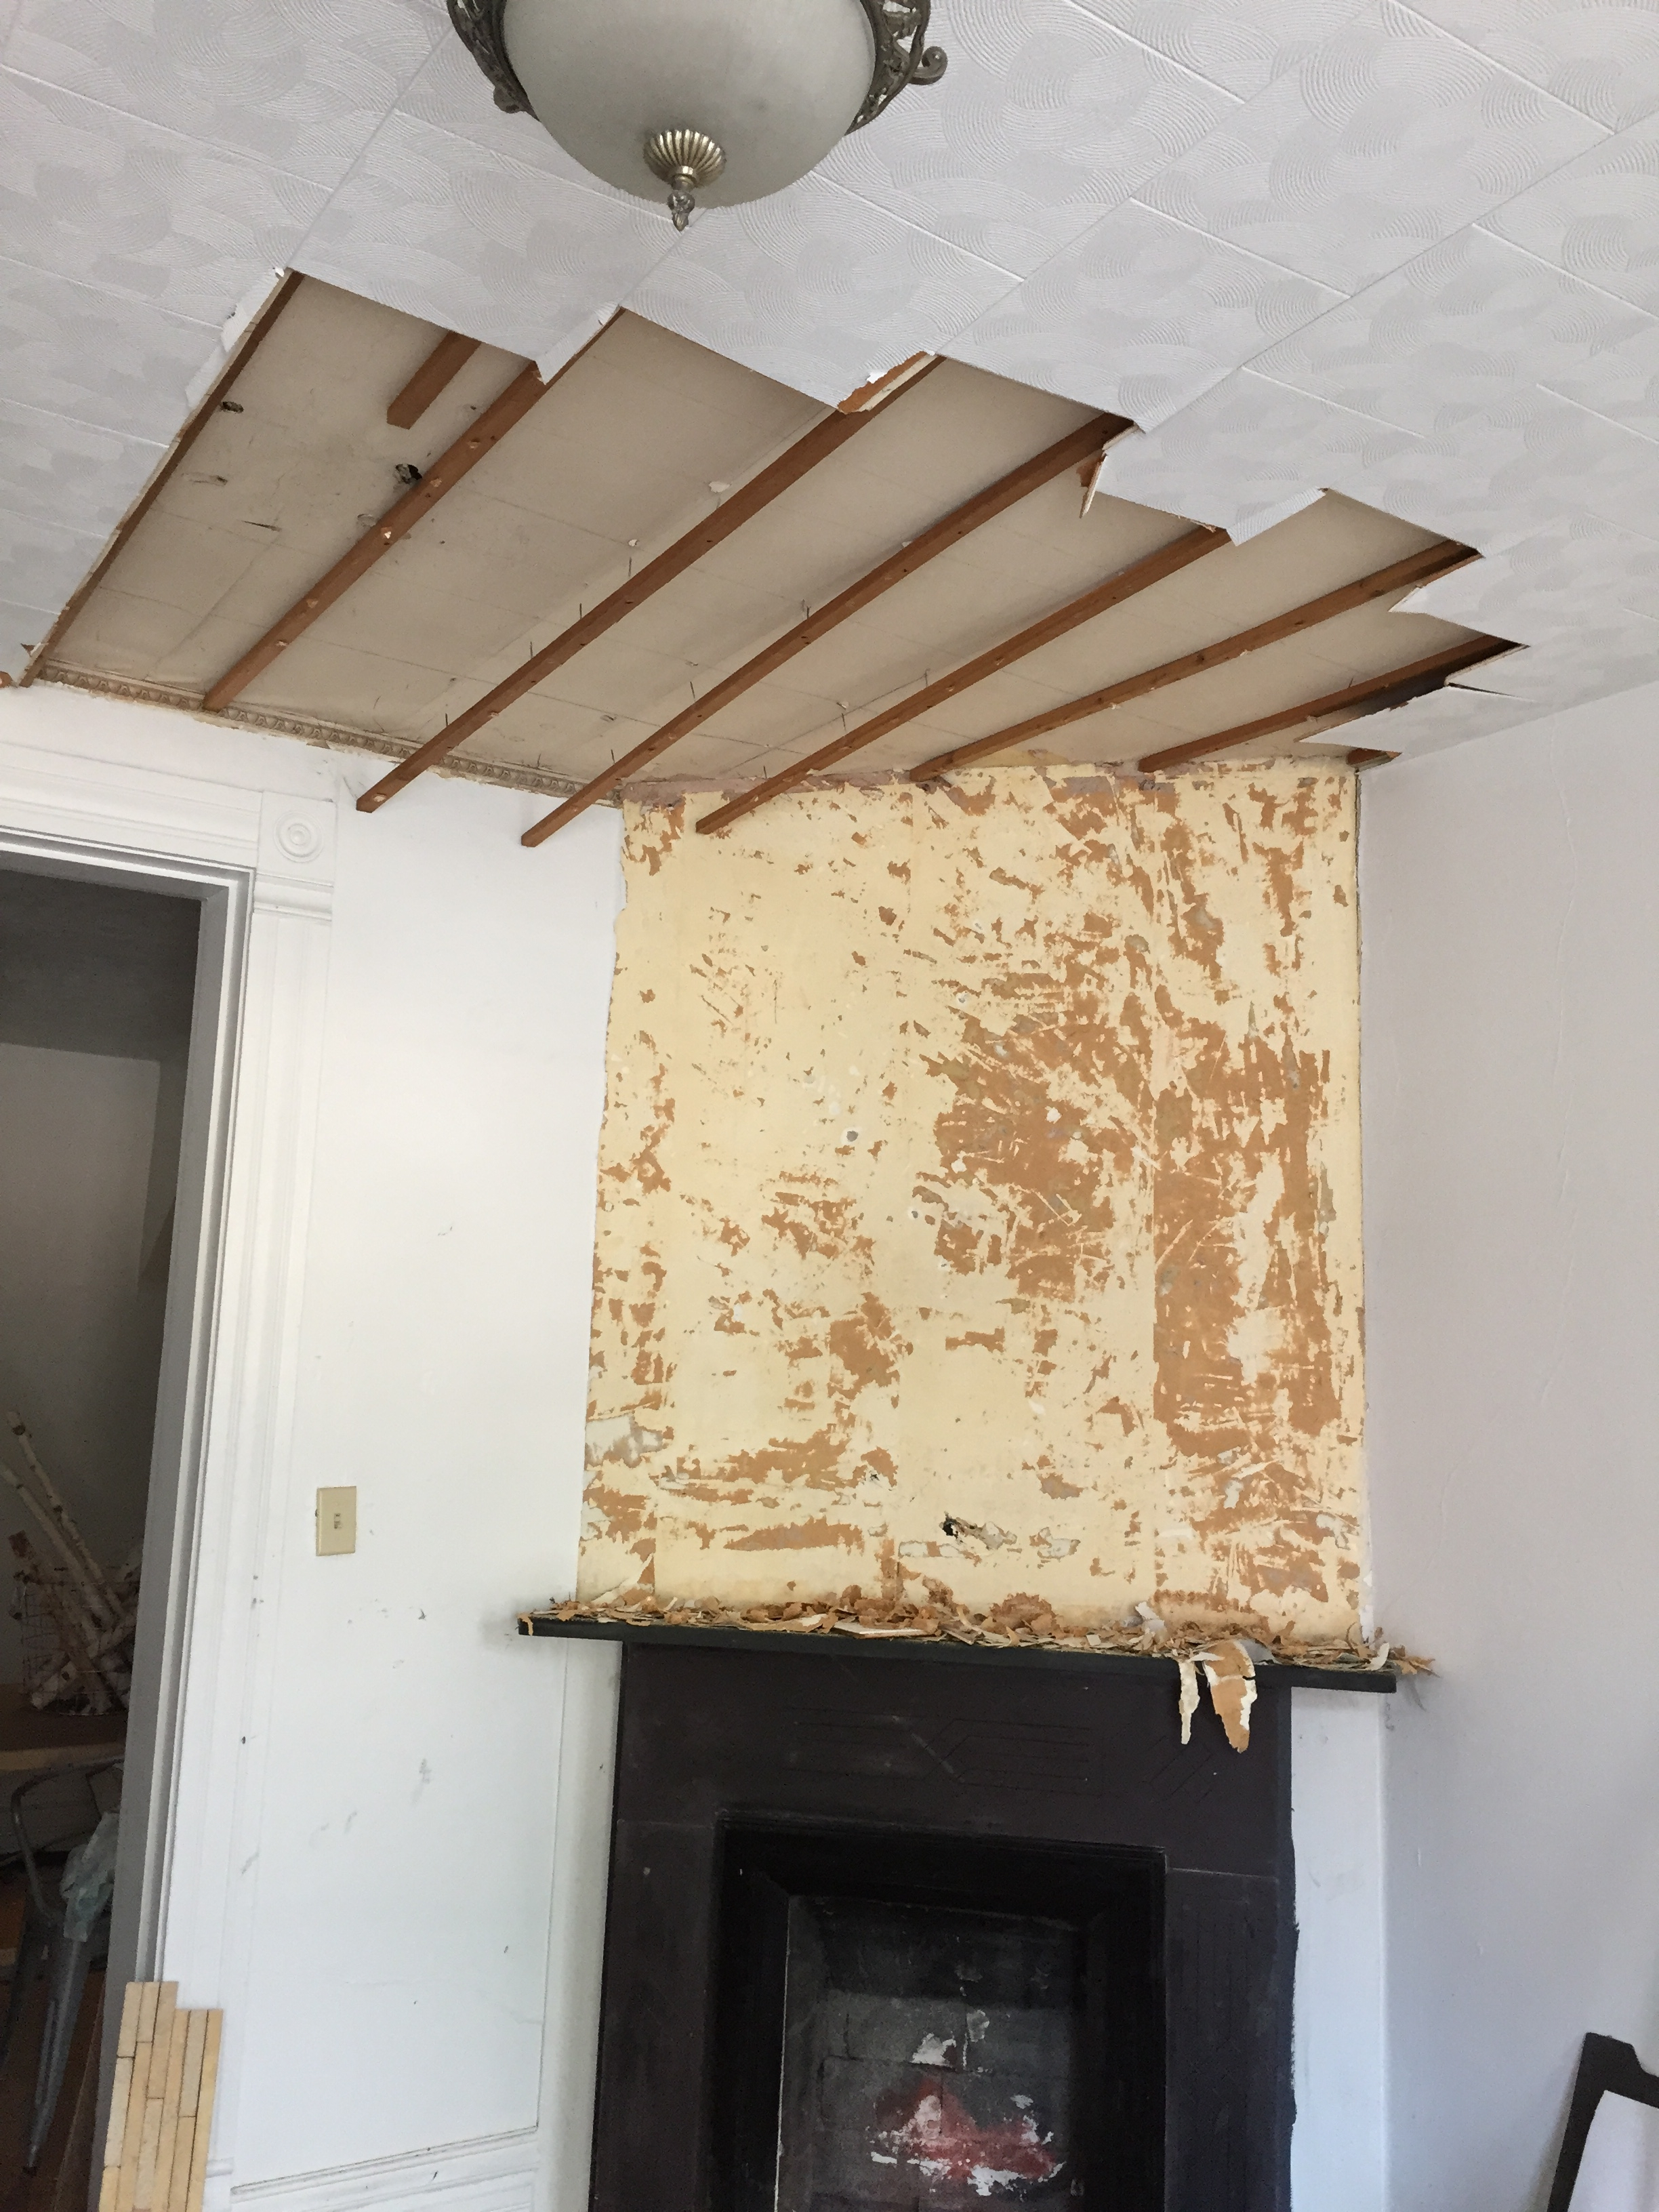 DIY $102 Fireplace Facelift | Beginning in the Middle